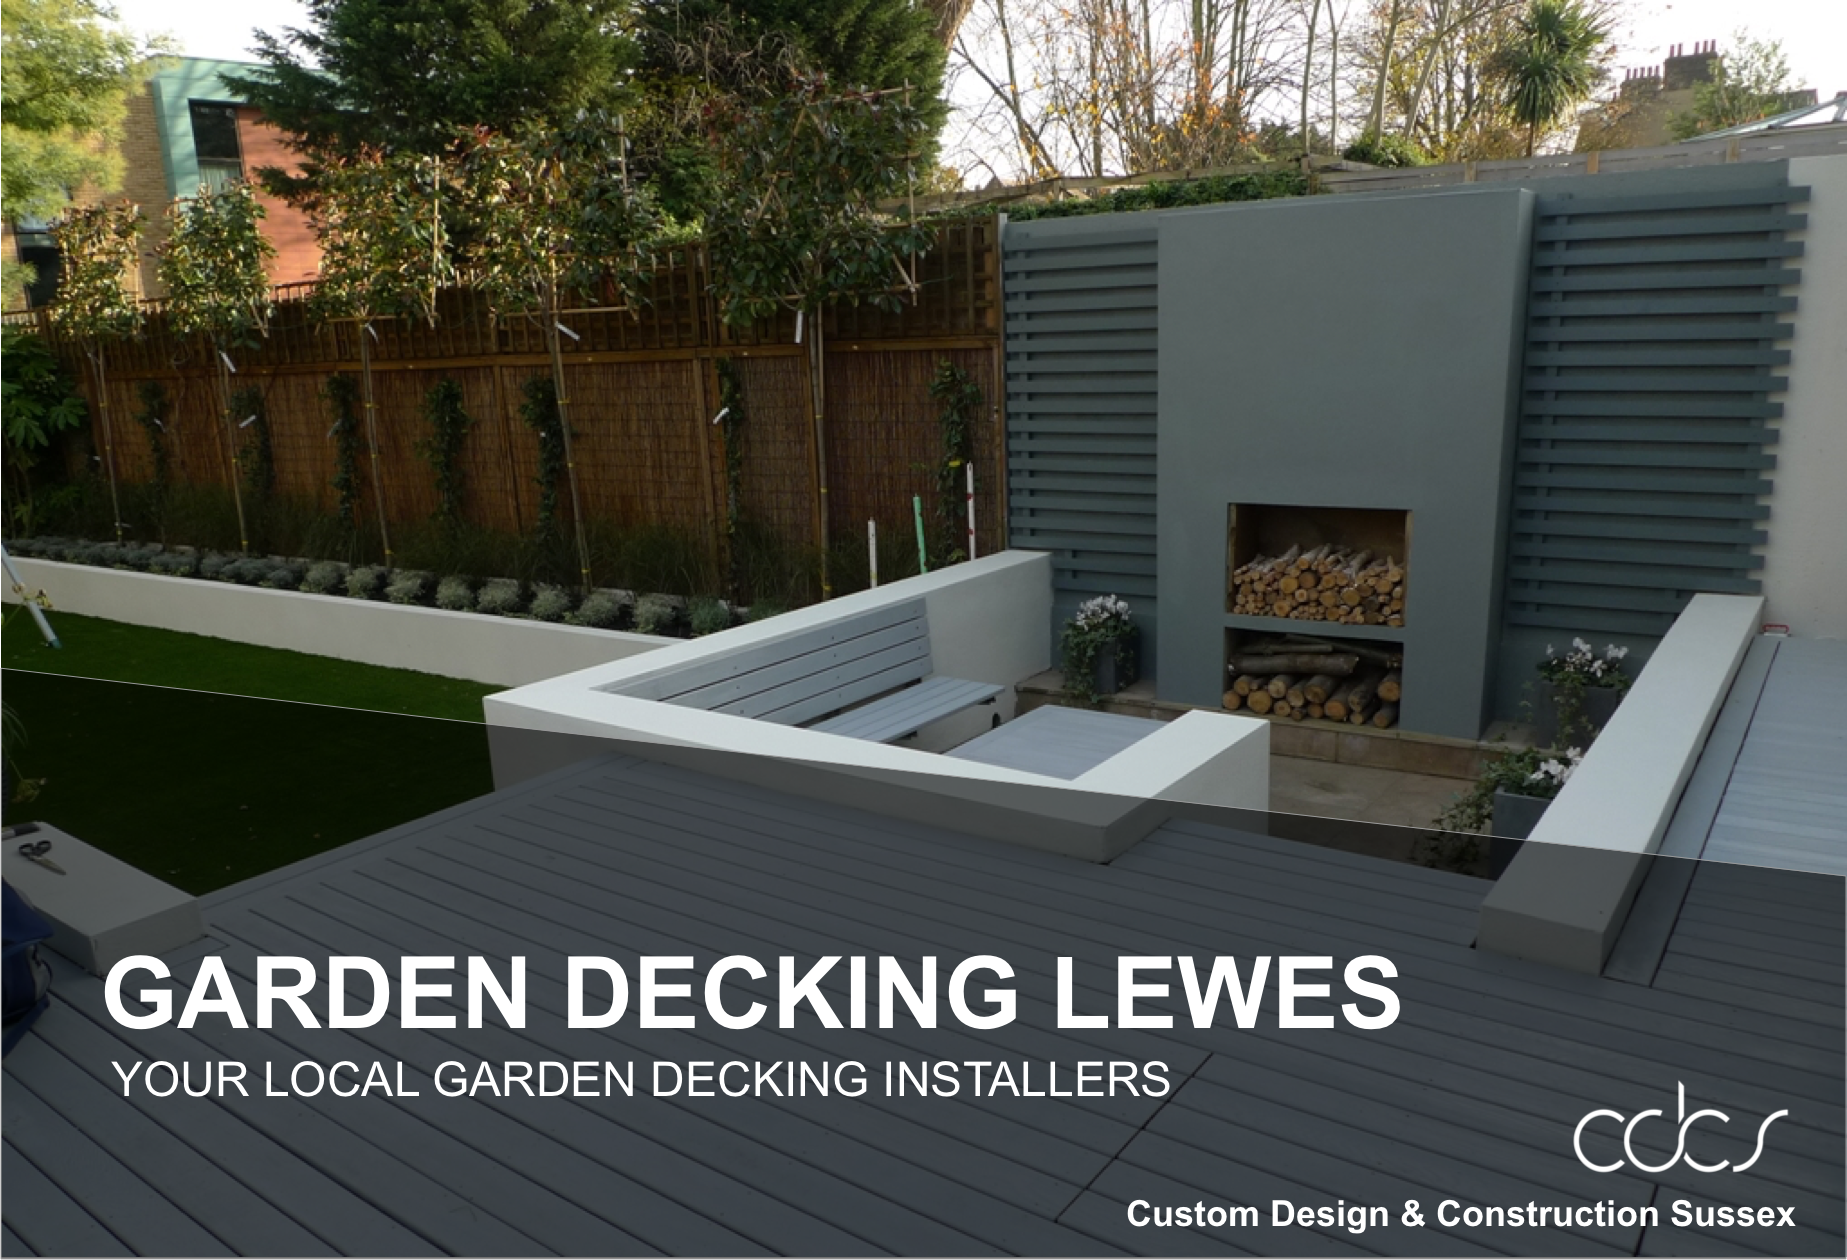 Garden Decking Lewes Create That Extra Space